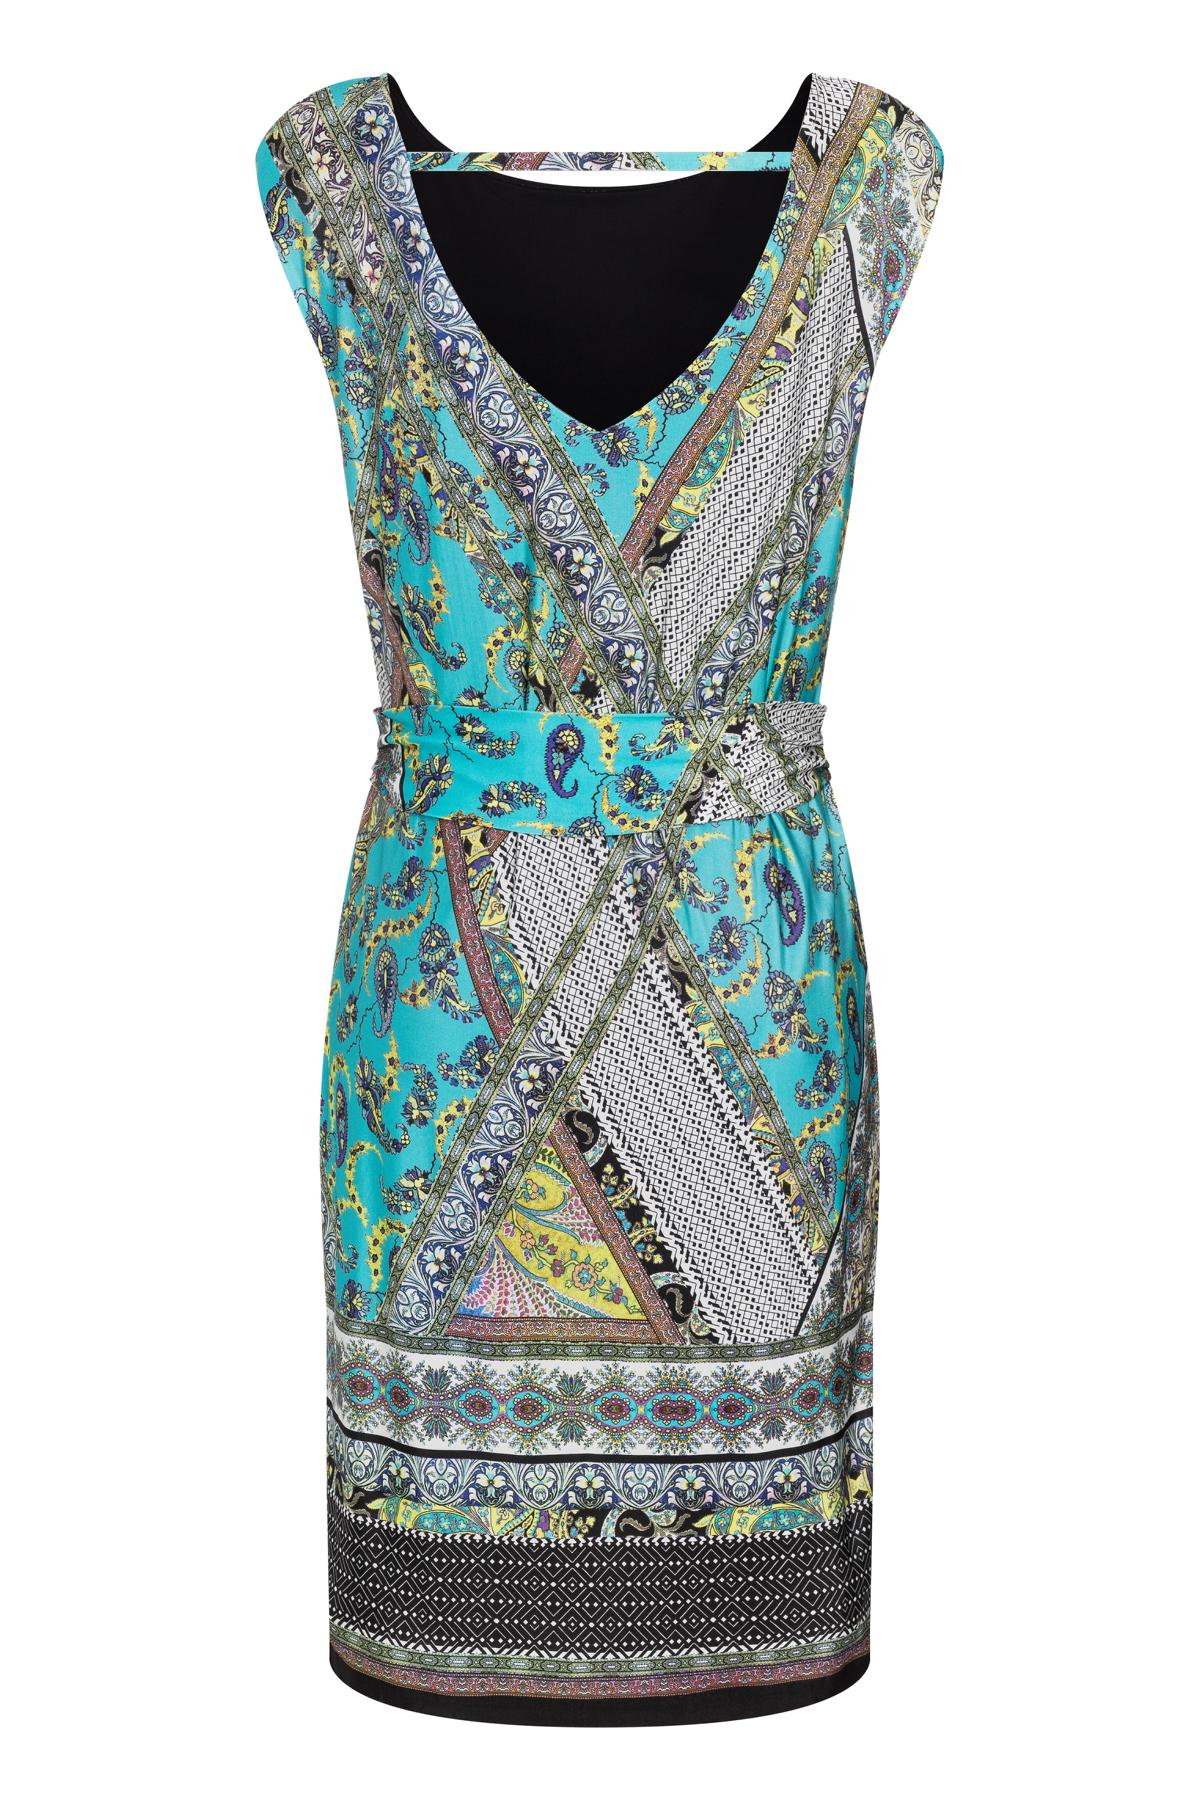 PRODUCT_PICTURE_PRE_7Ana Alcazar Patchwork Kleid Setrari PRODUCT_PICTURE_SUF_7